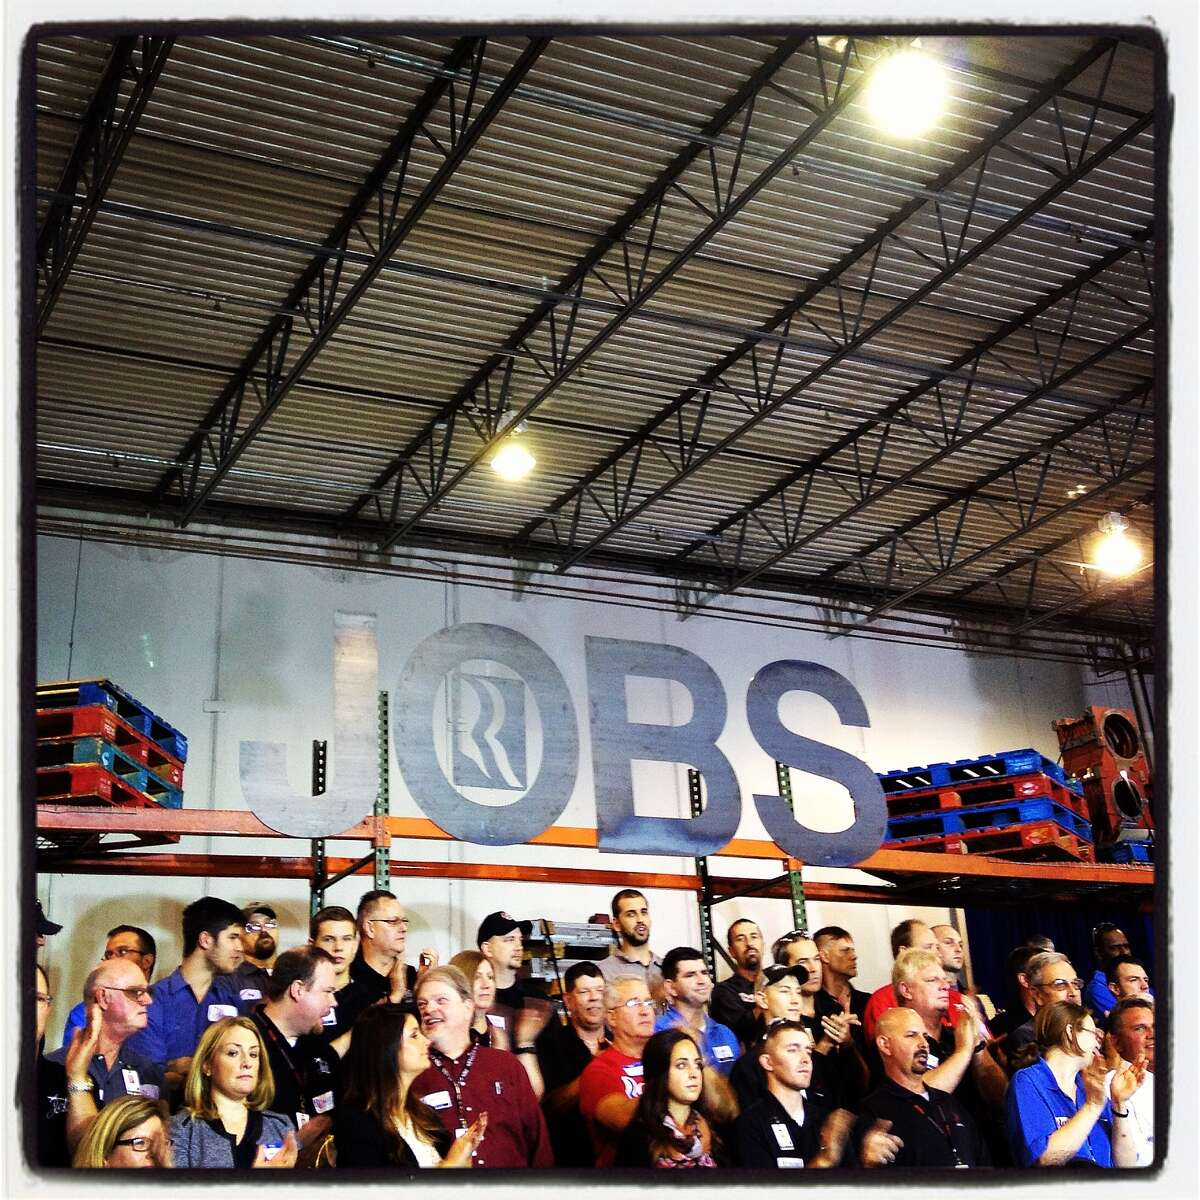 People listen to Republican presidential candidate, former Massachusetts Gov. Mitt Romney speak during a campaign rally on October 25, 2012 in Cincinnati, Ohio. Mitt Romney is campaigning in Ohio with less than two weeks to go before the election.